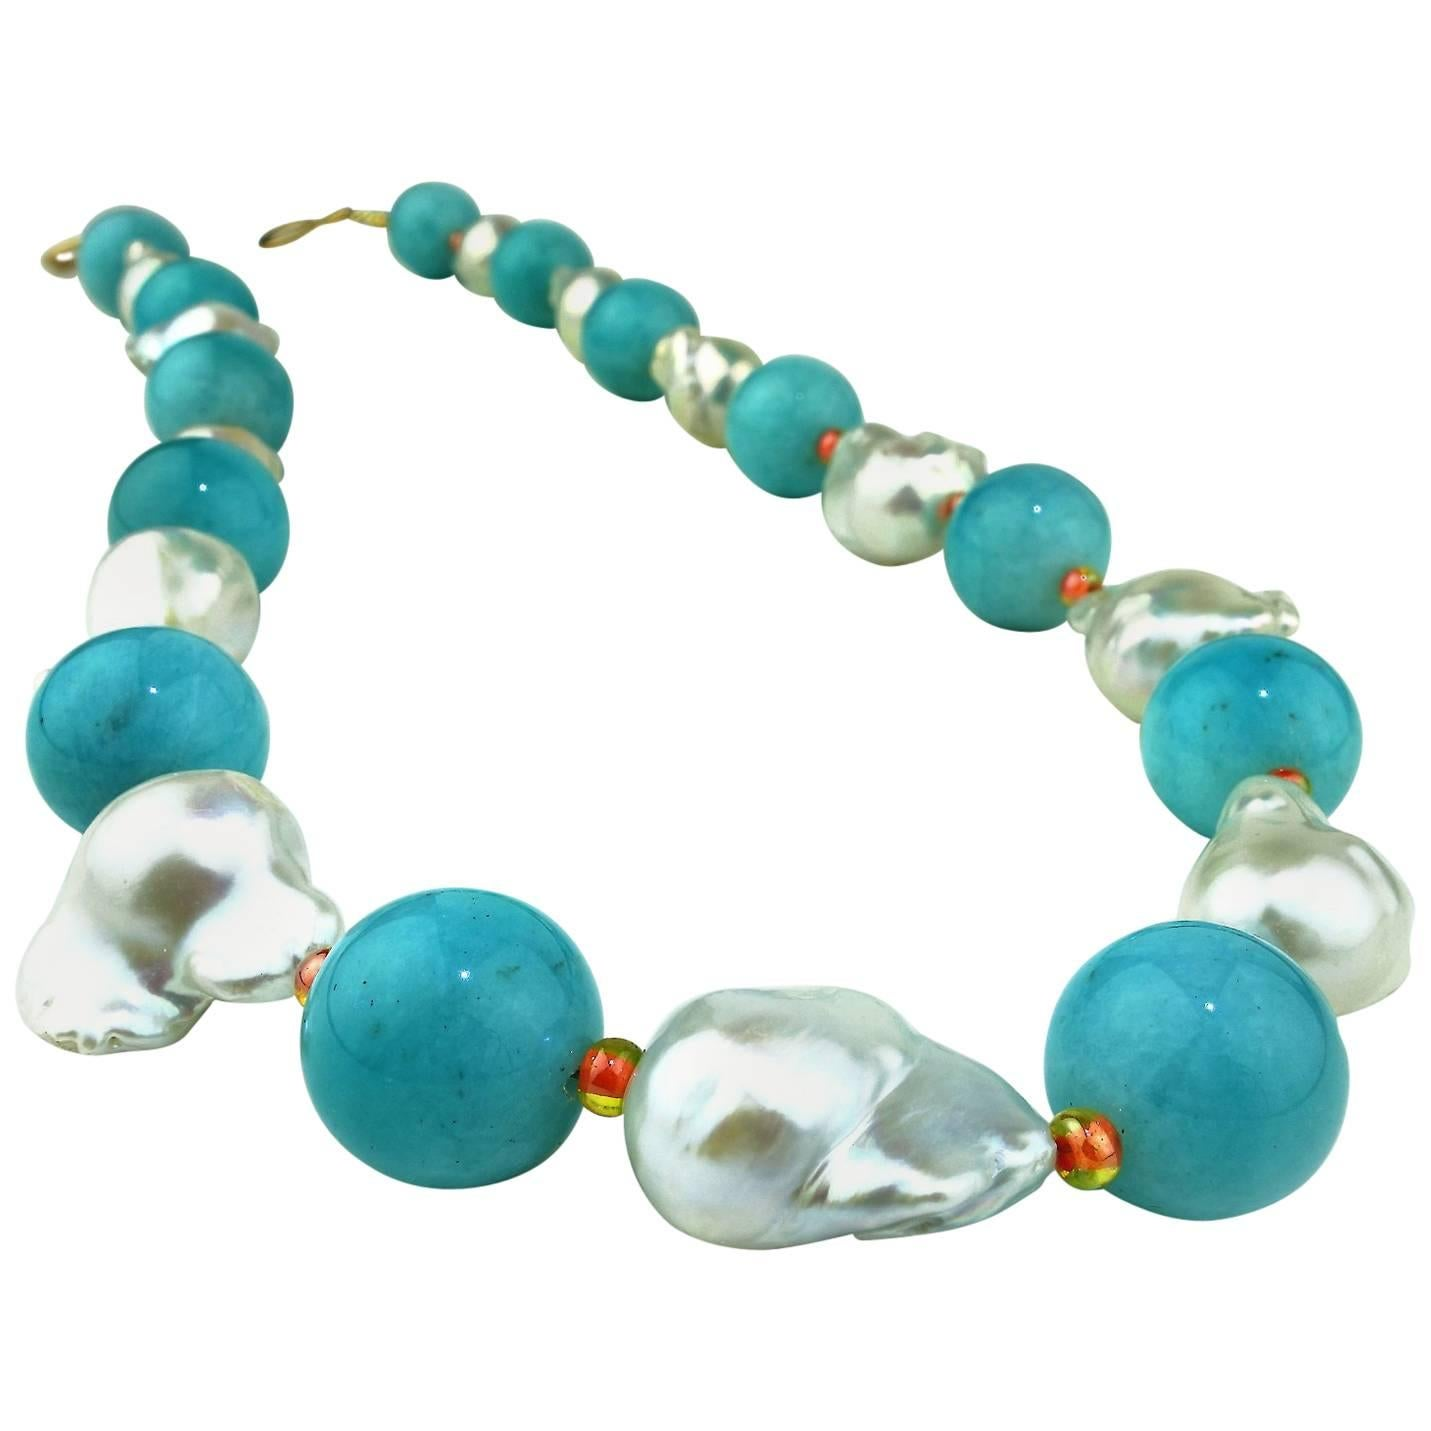 Gemjunky Summer Baroque Pearls, Amazonite and Orange Czech Beads Necklace